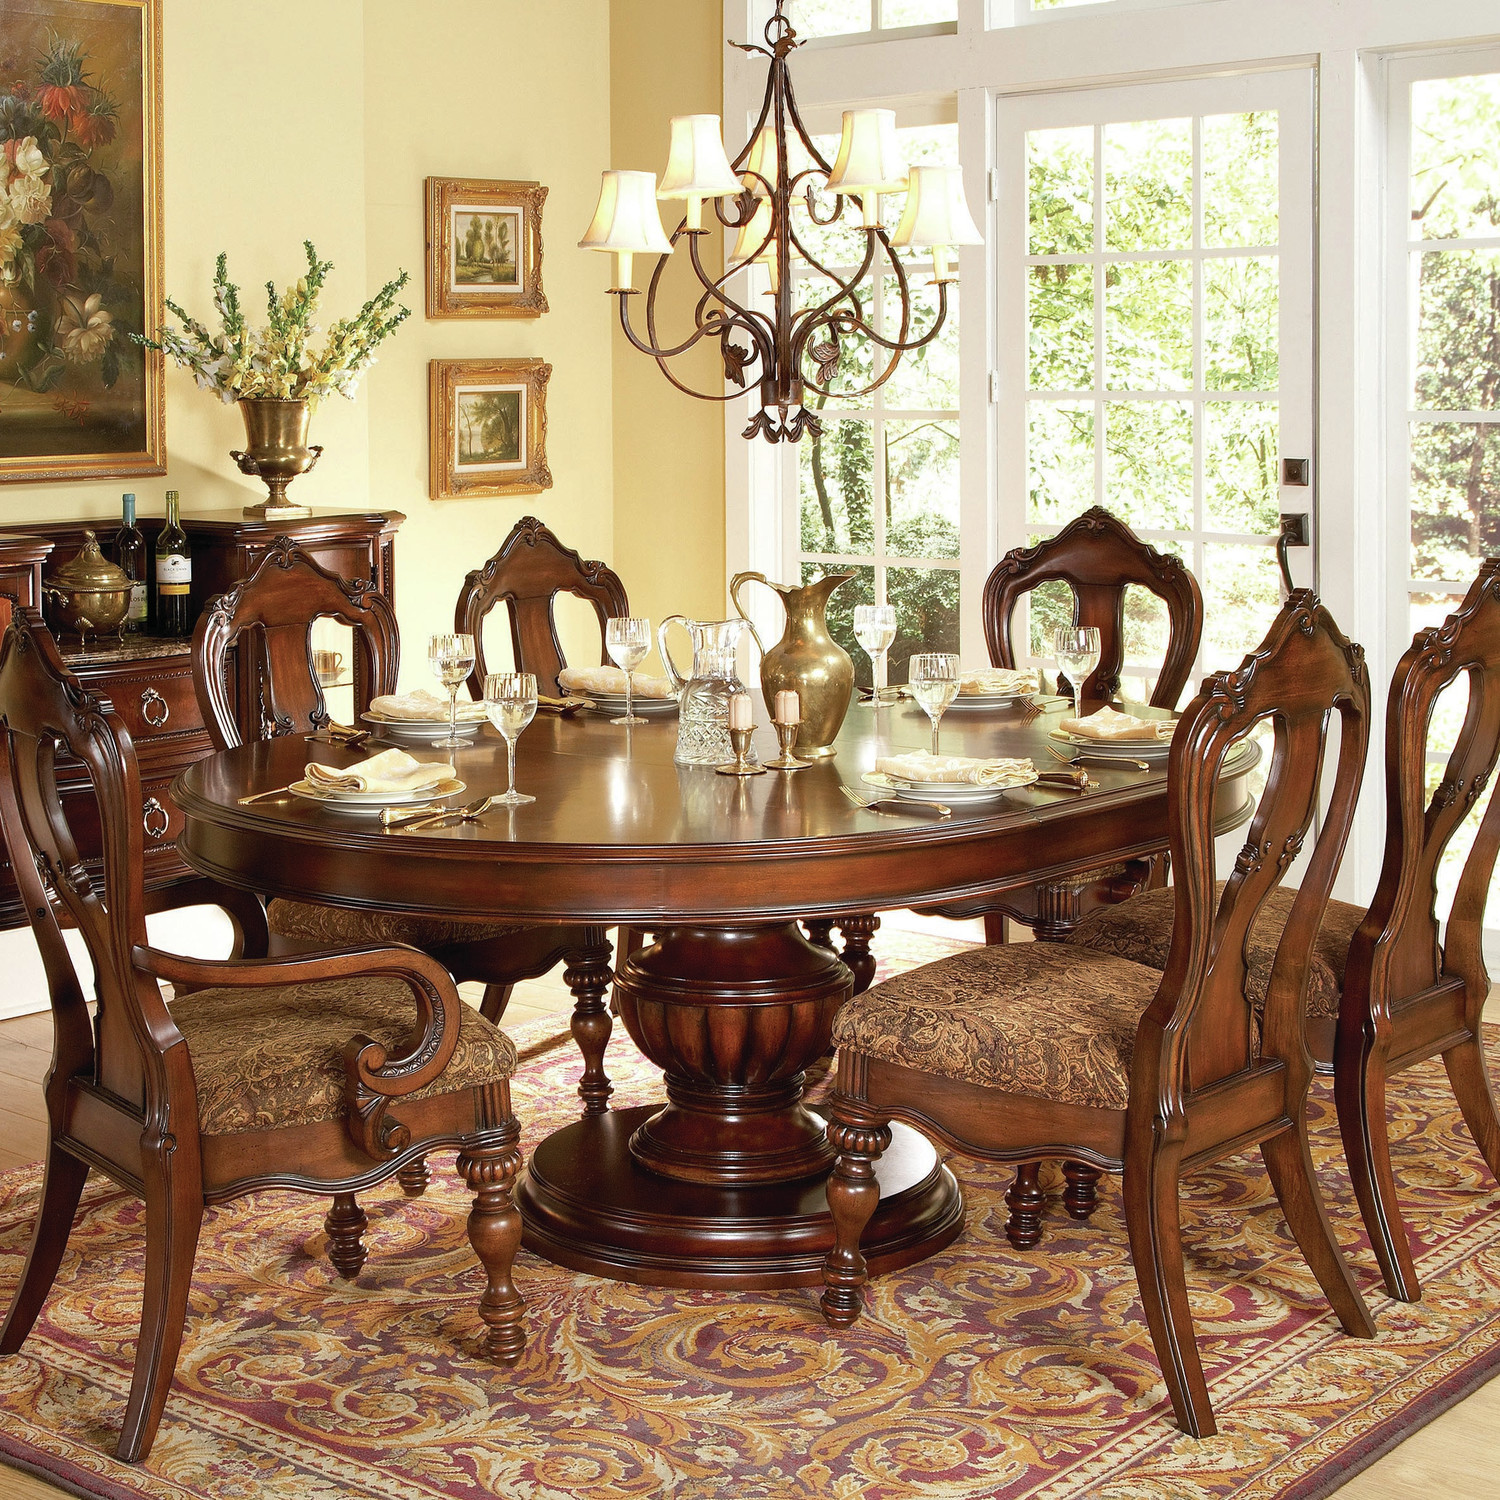 Round Dining Room Table For